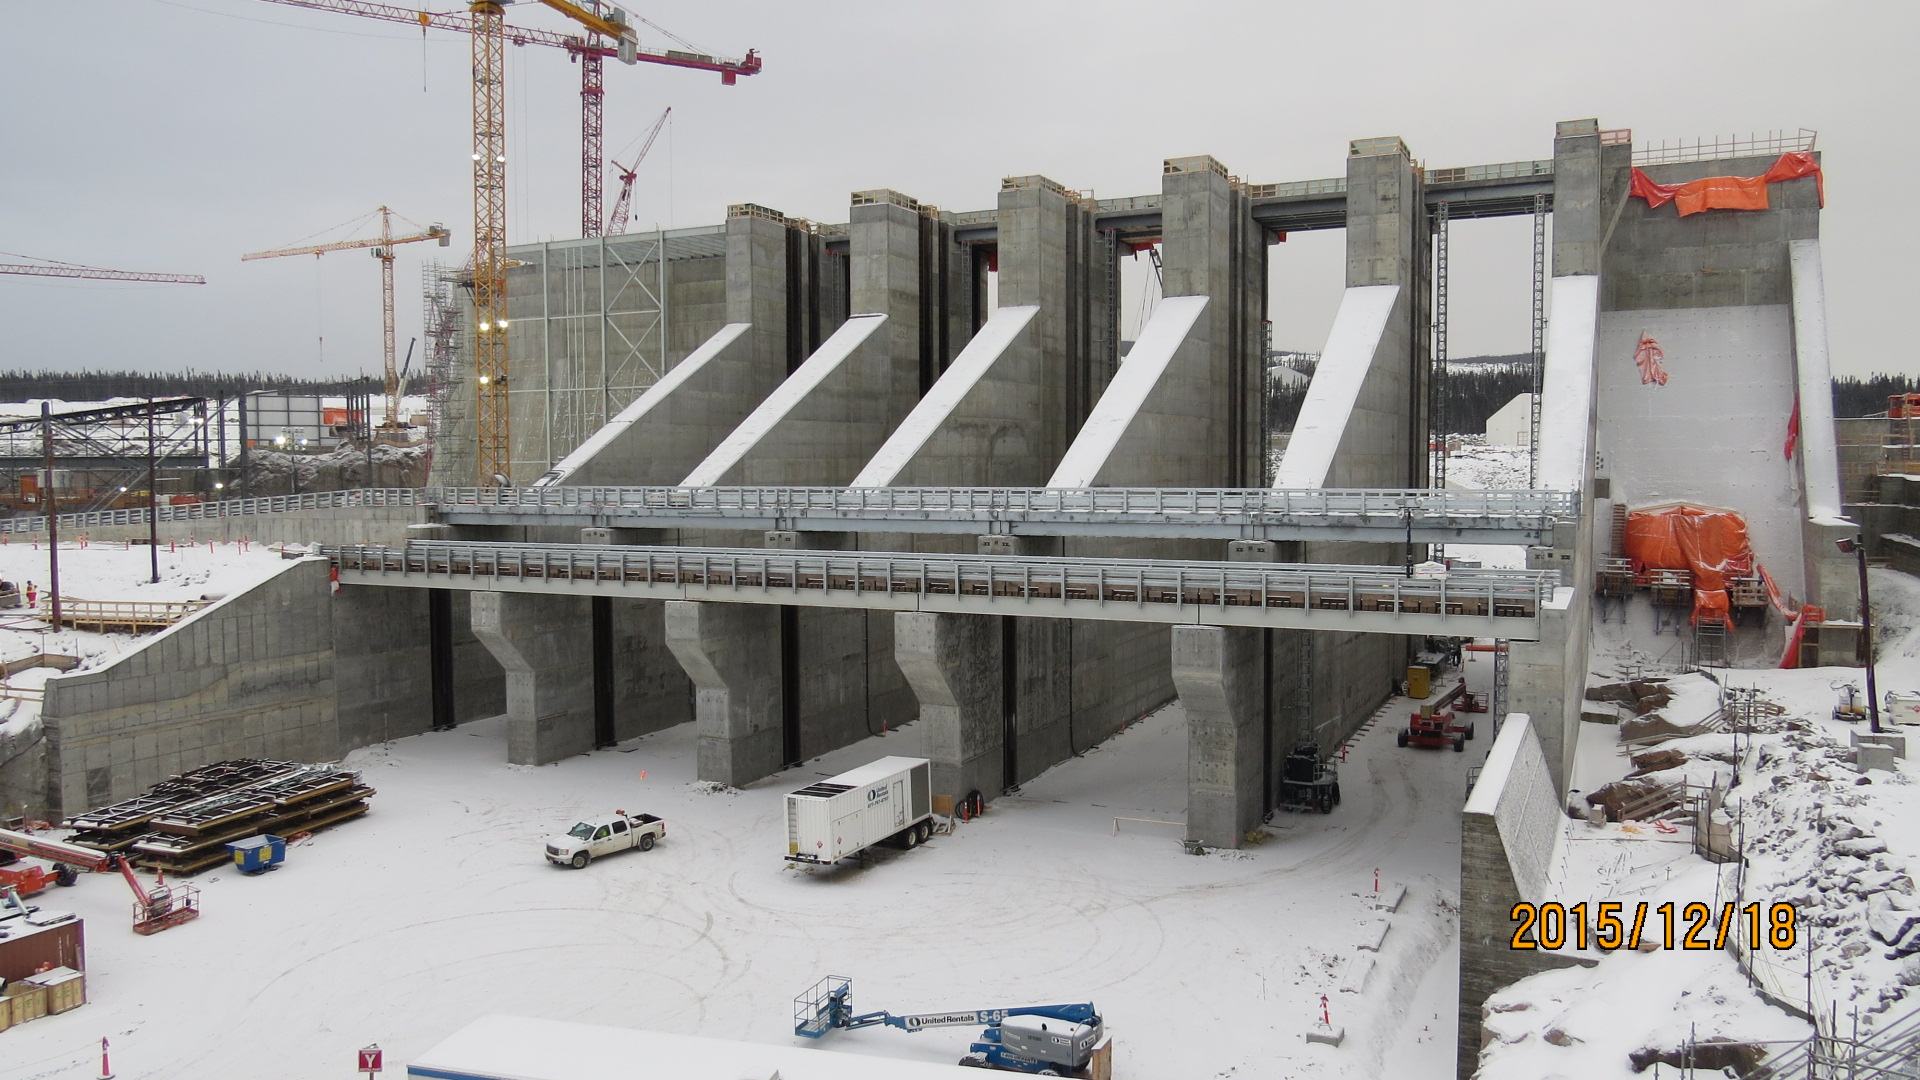 The spillway under construction at Muskrat Falls